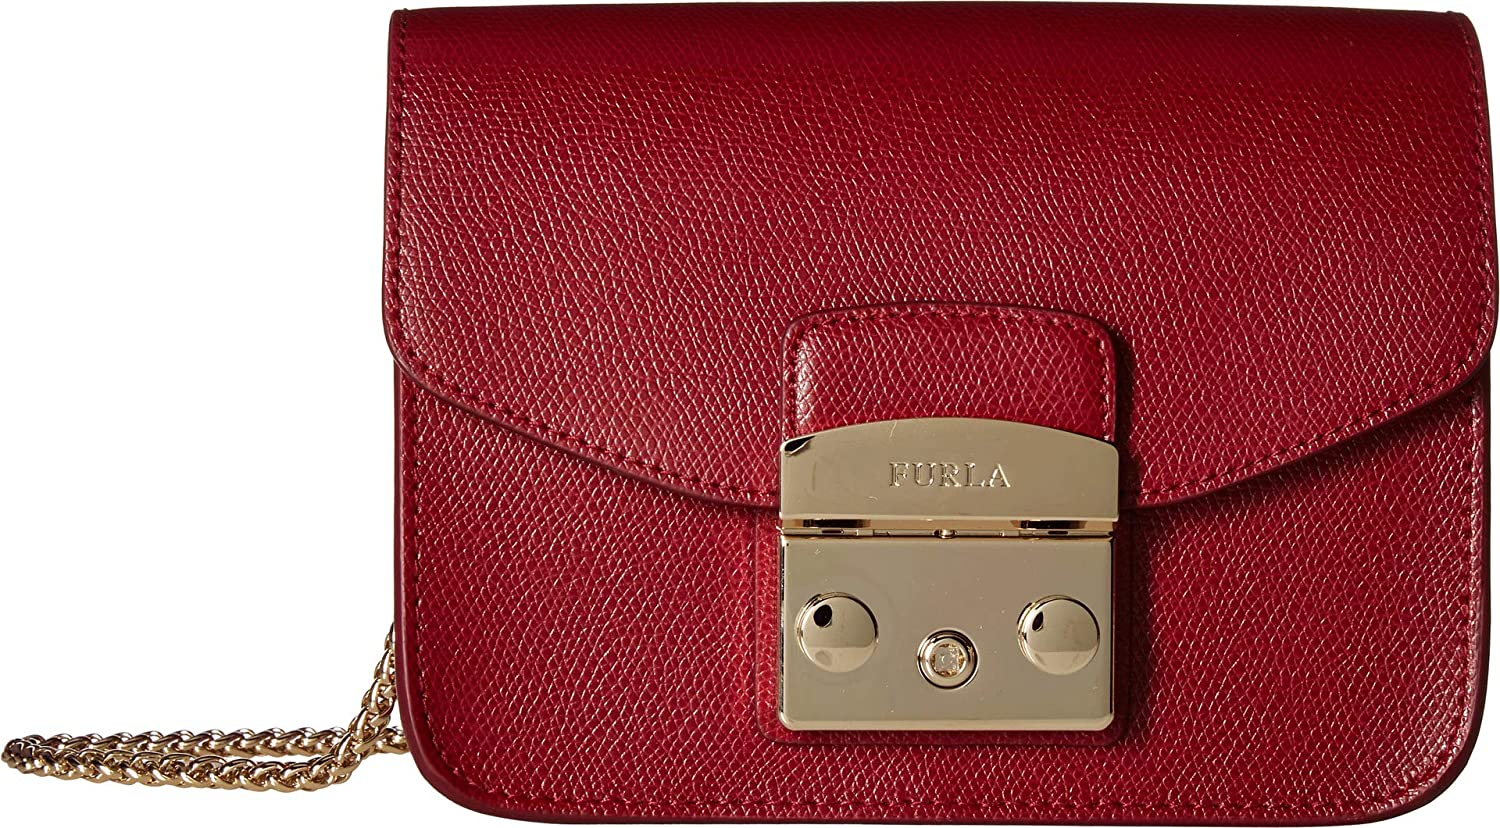 FURLA Metropolis Mini Cross Body METROPOLIS MINI CROSSBODY